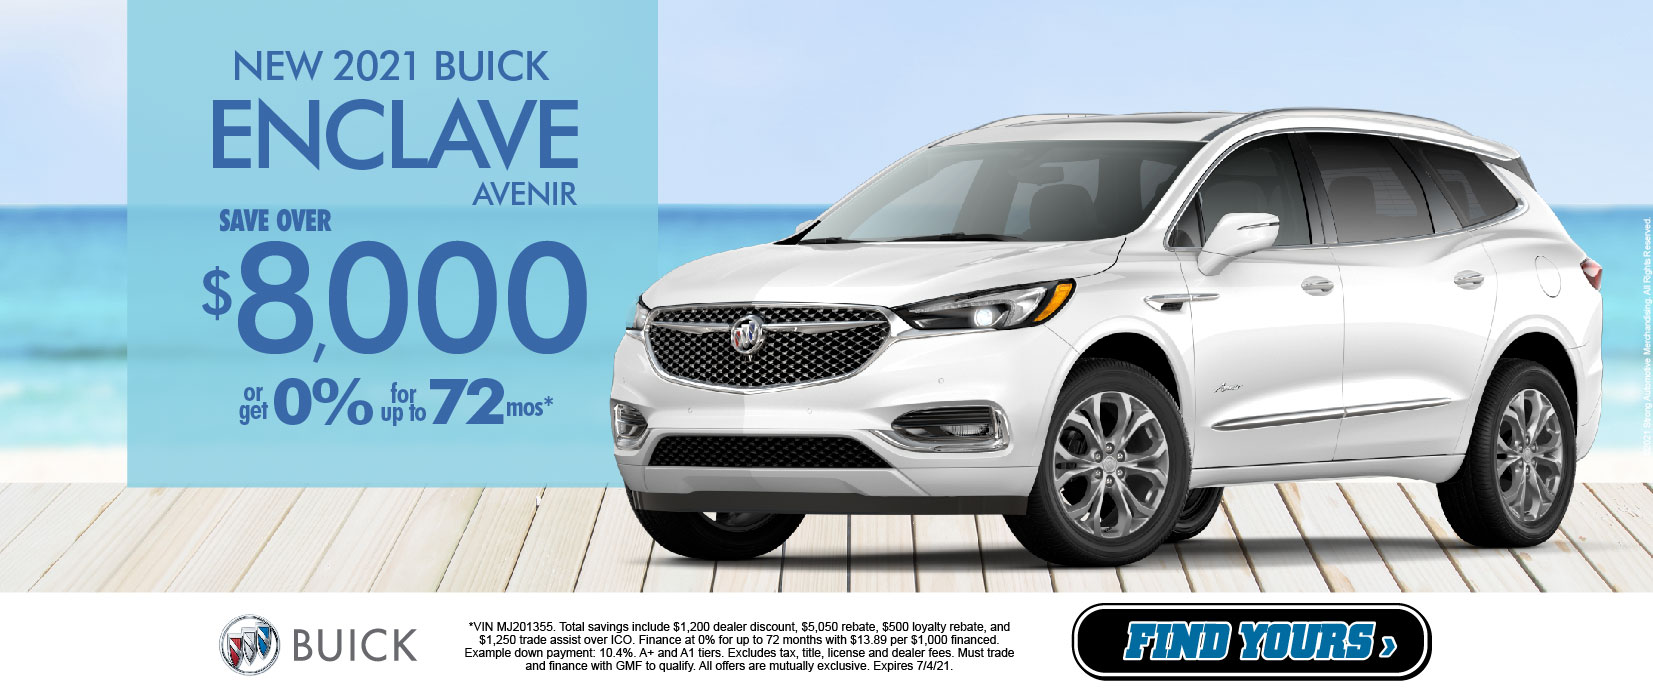 New 2021 Buick Enclave Avenir Save over $8,00